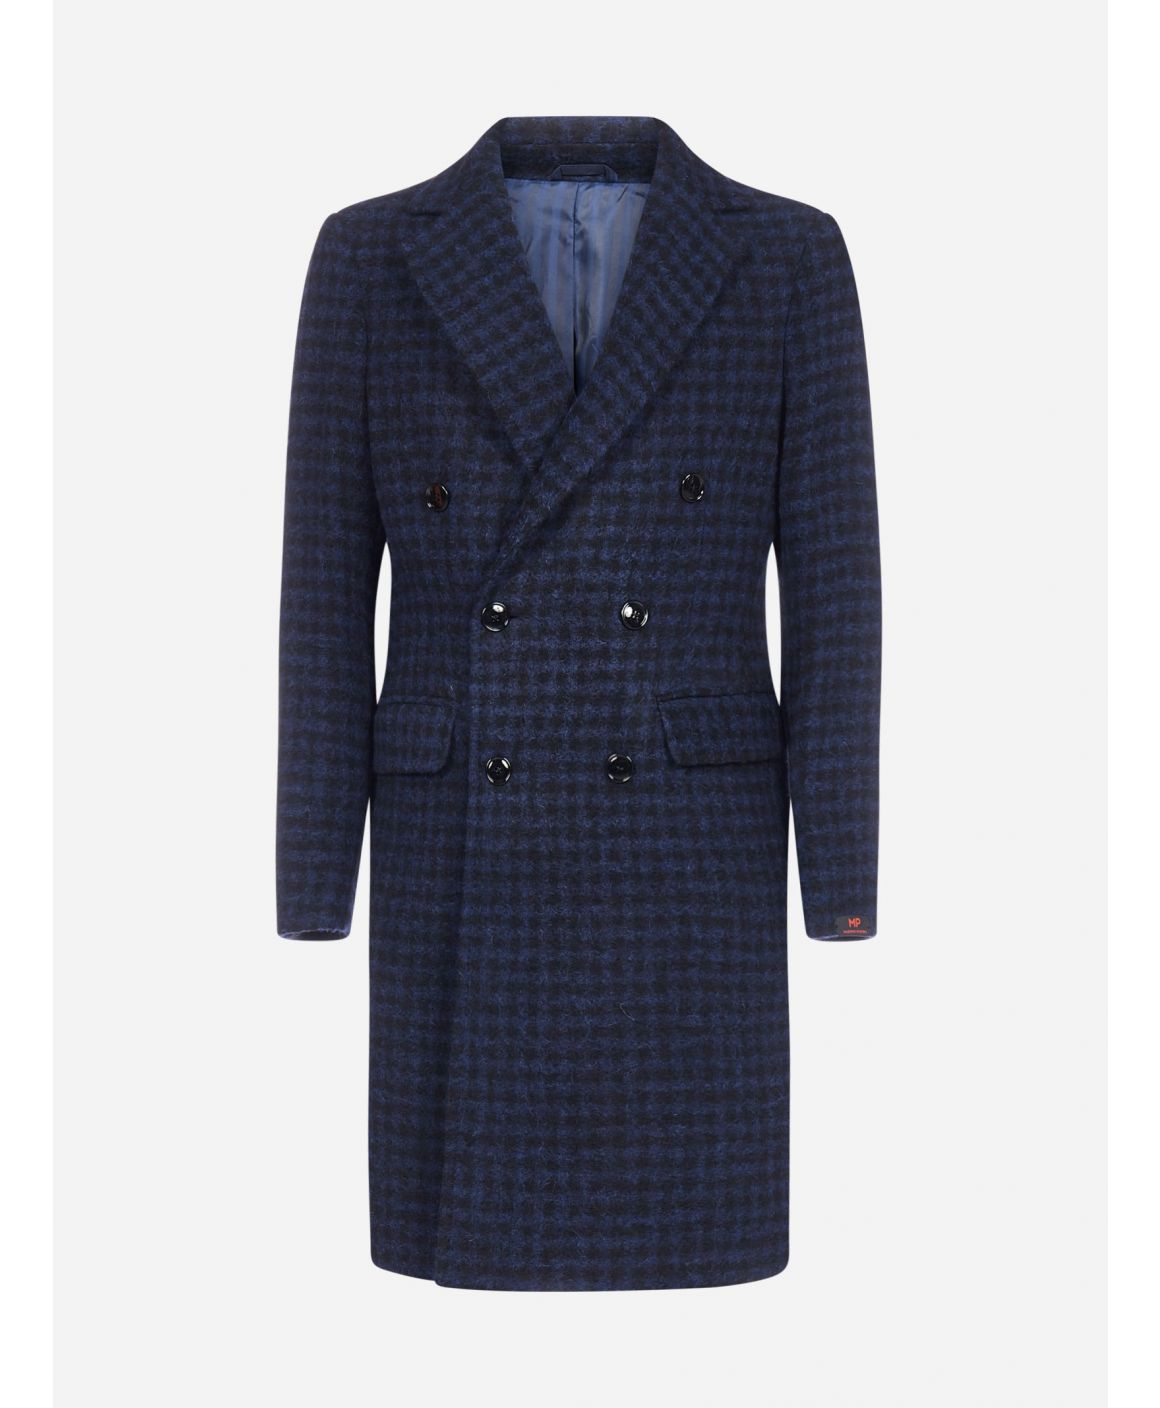 Roger double-breasted gingham virgin wool coat